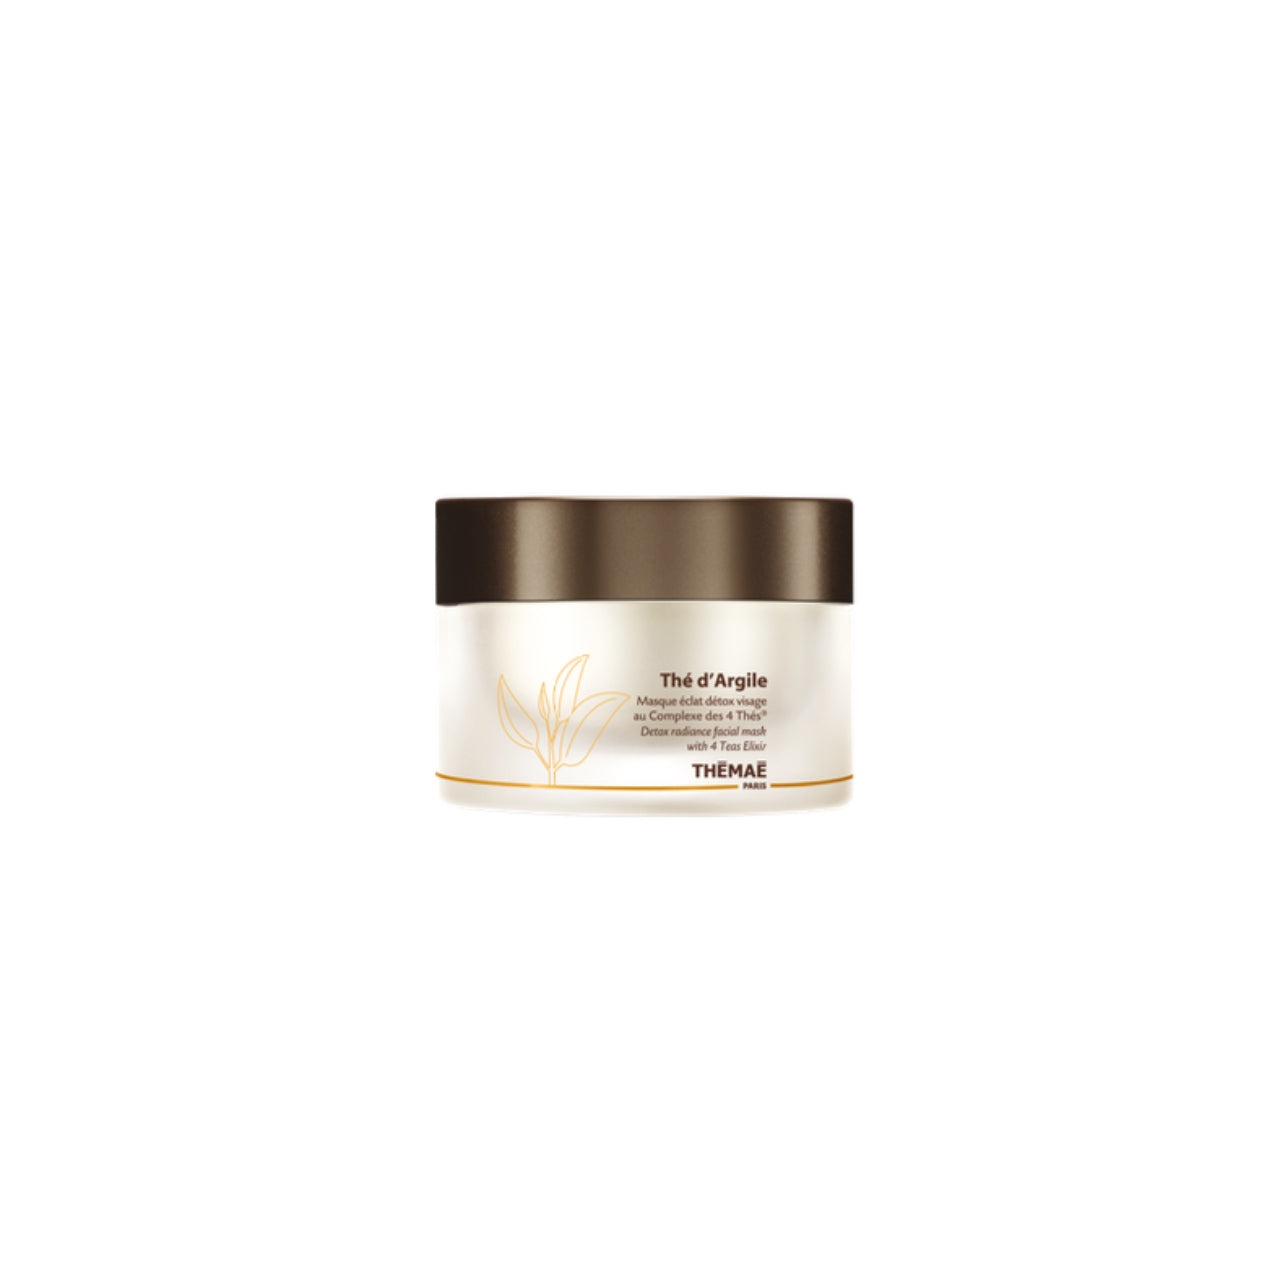 THEMAE Detox radiance facial mask